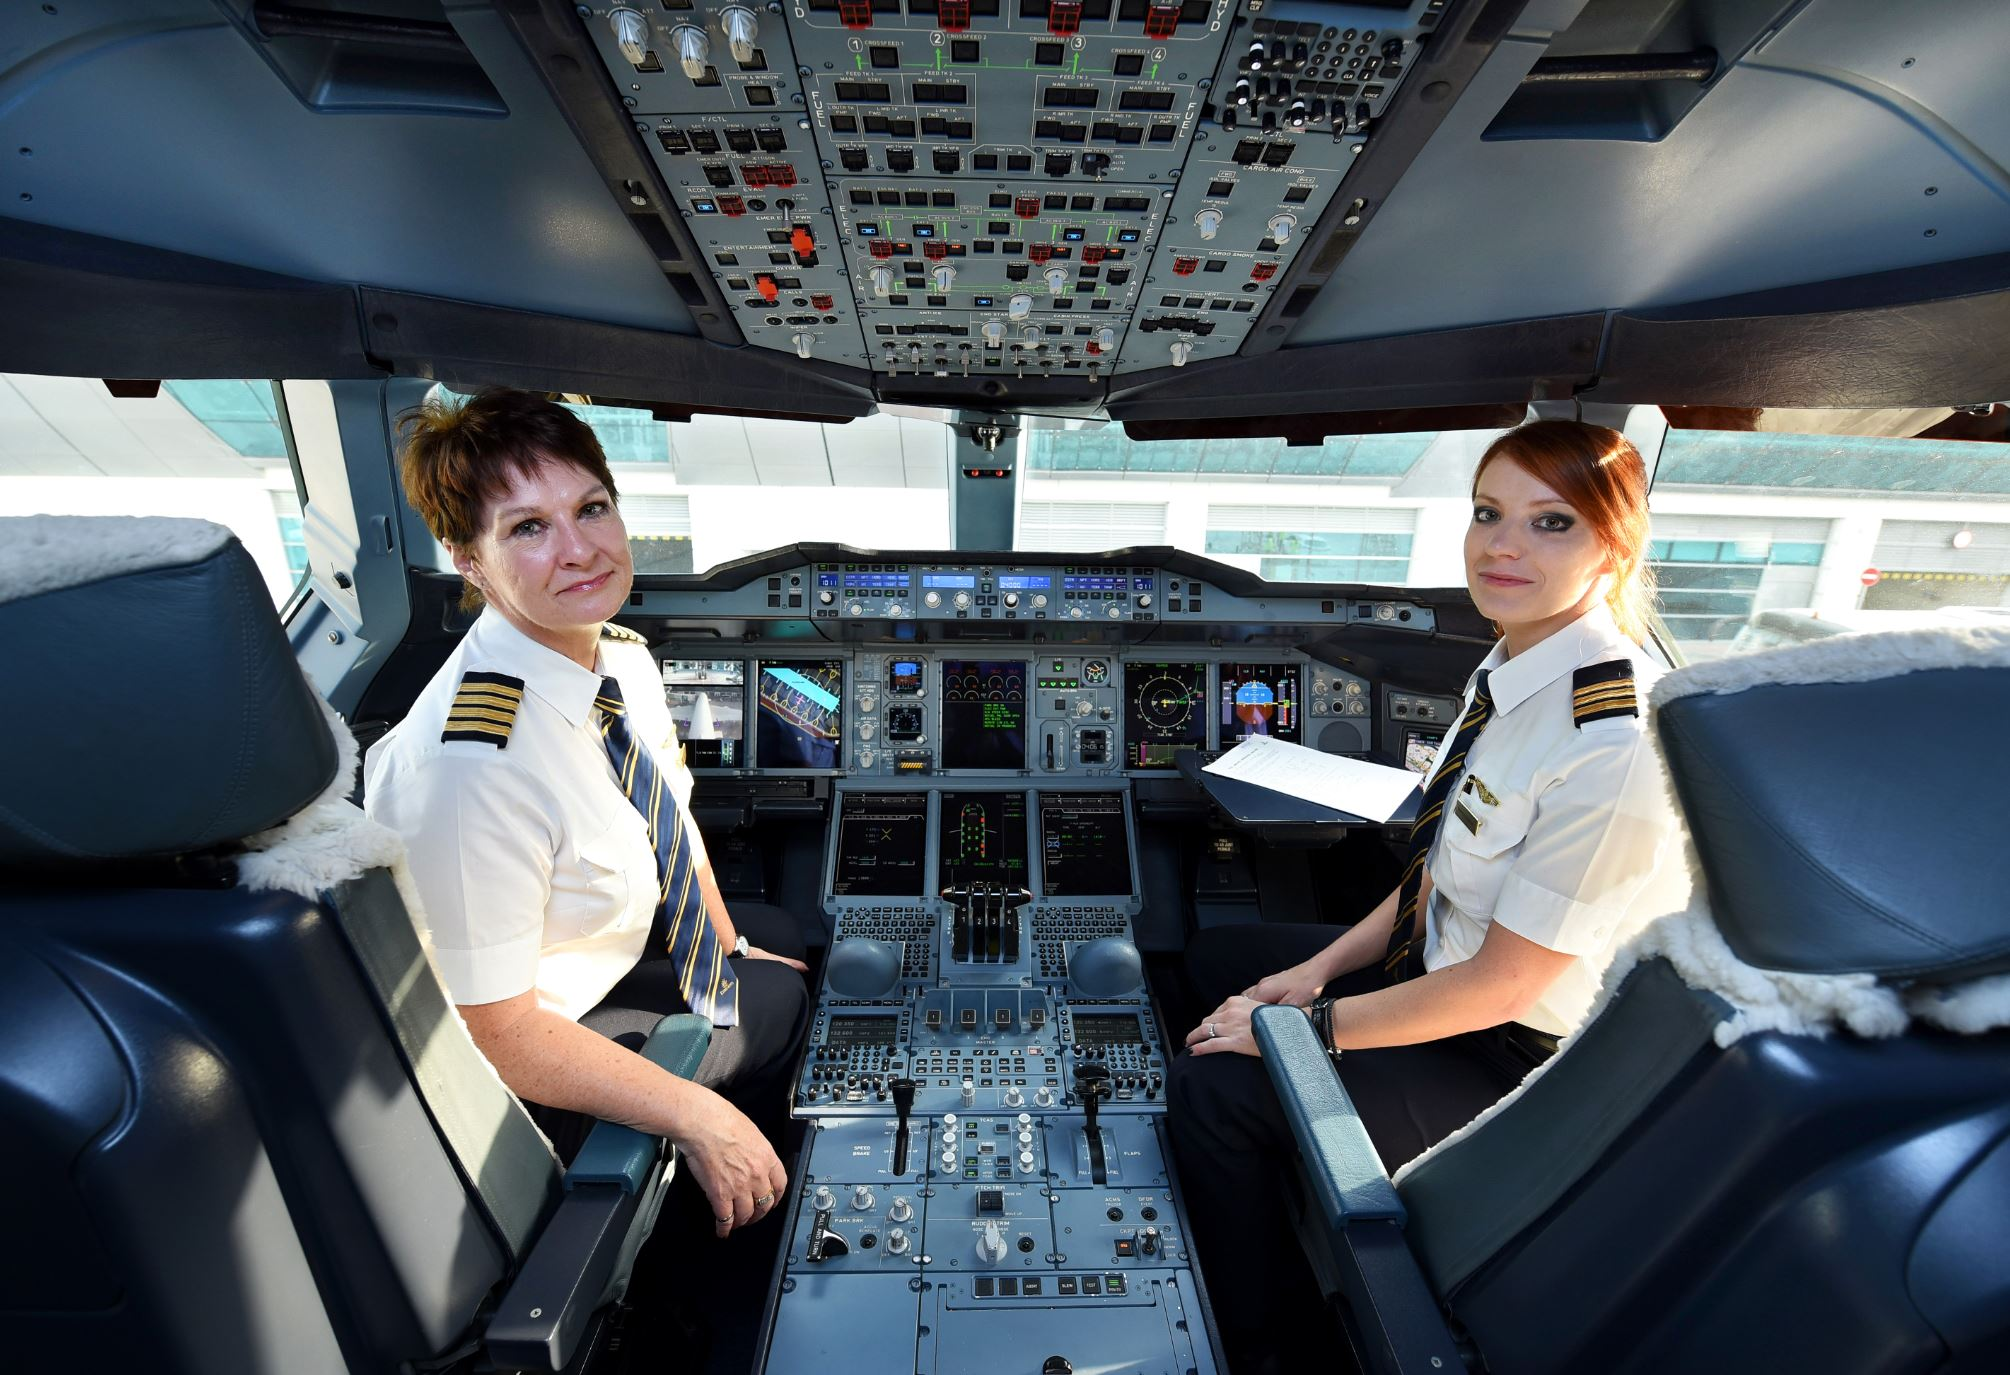 Female pilots: Aviation industry lagging in 'pilot gender